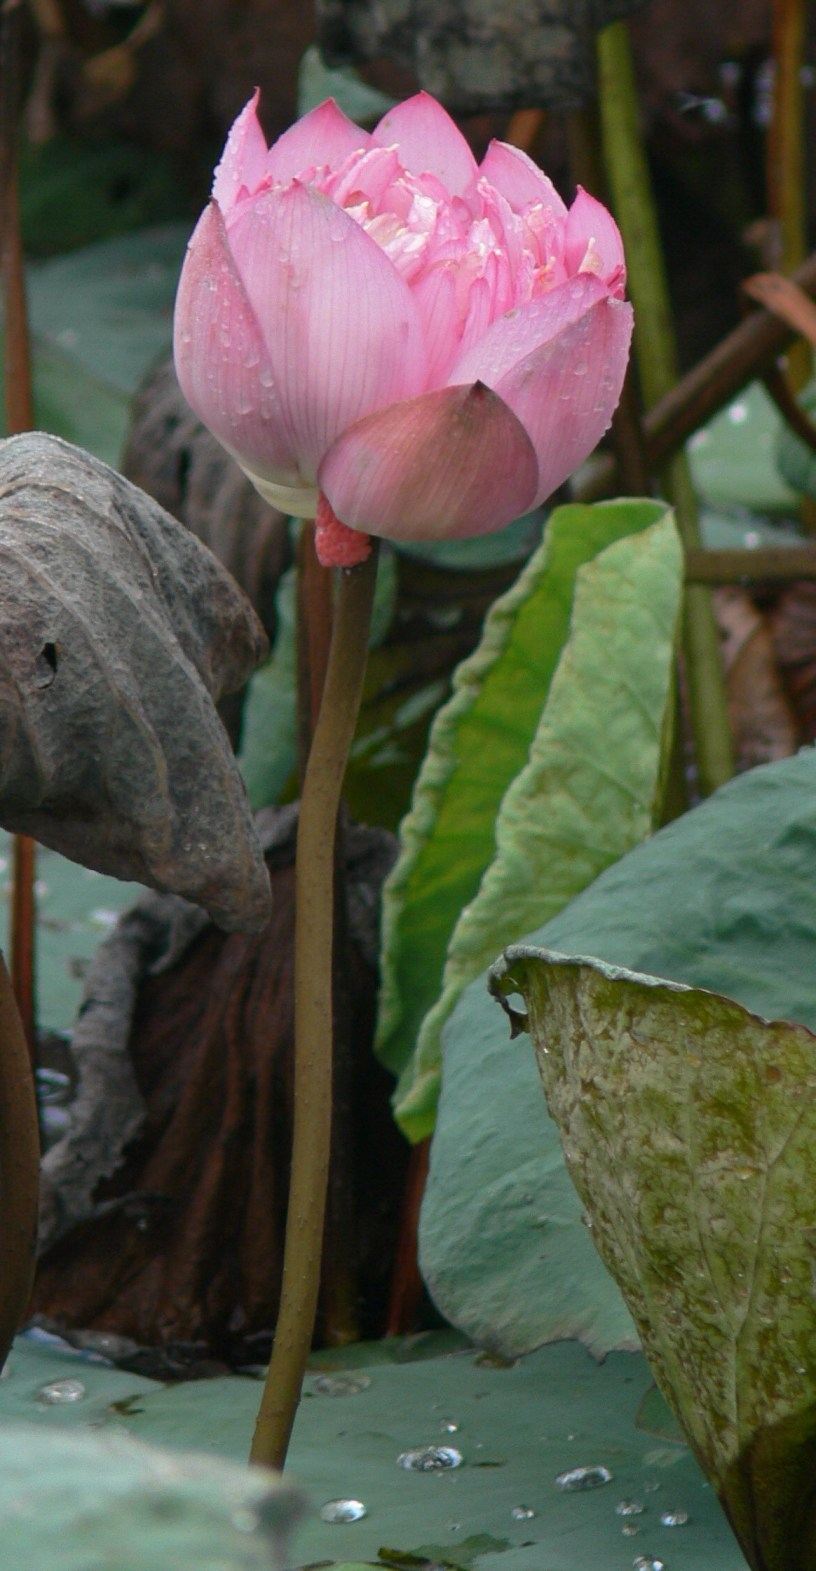 Lotus flower growing in Hanoi, Vietnam